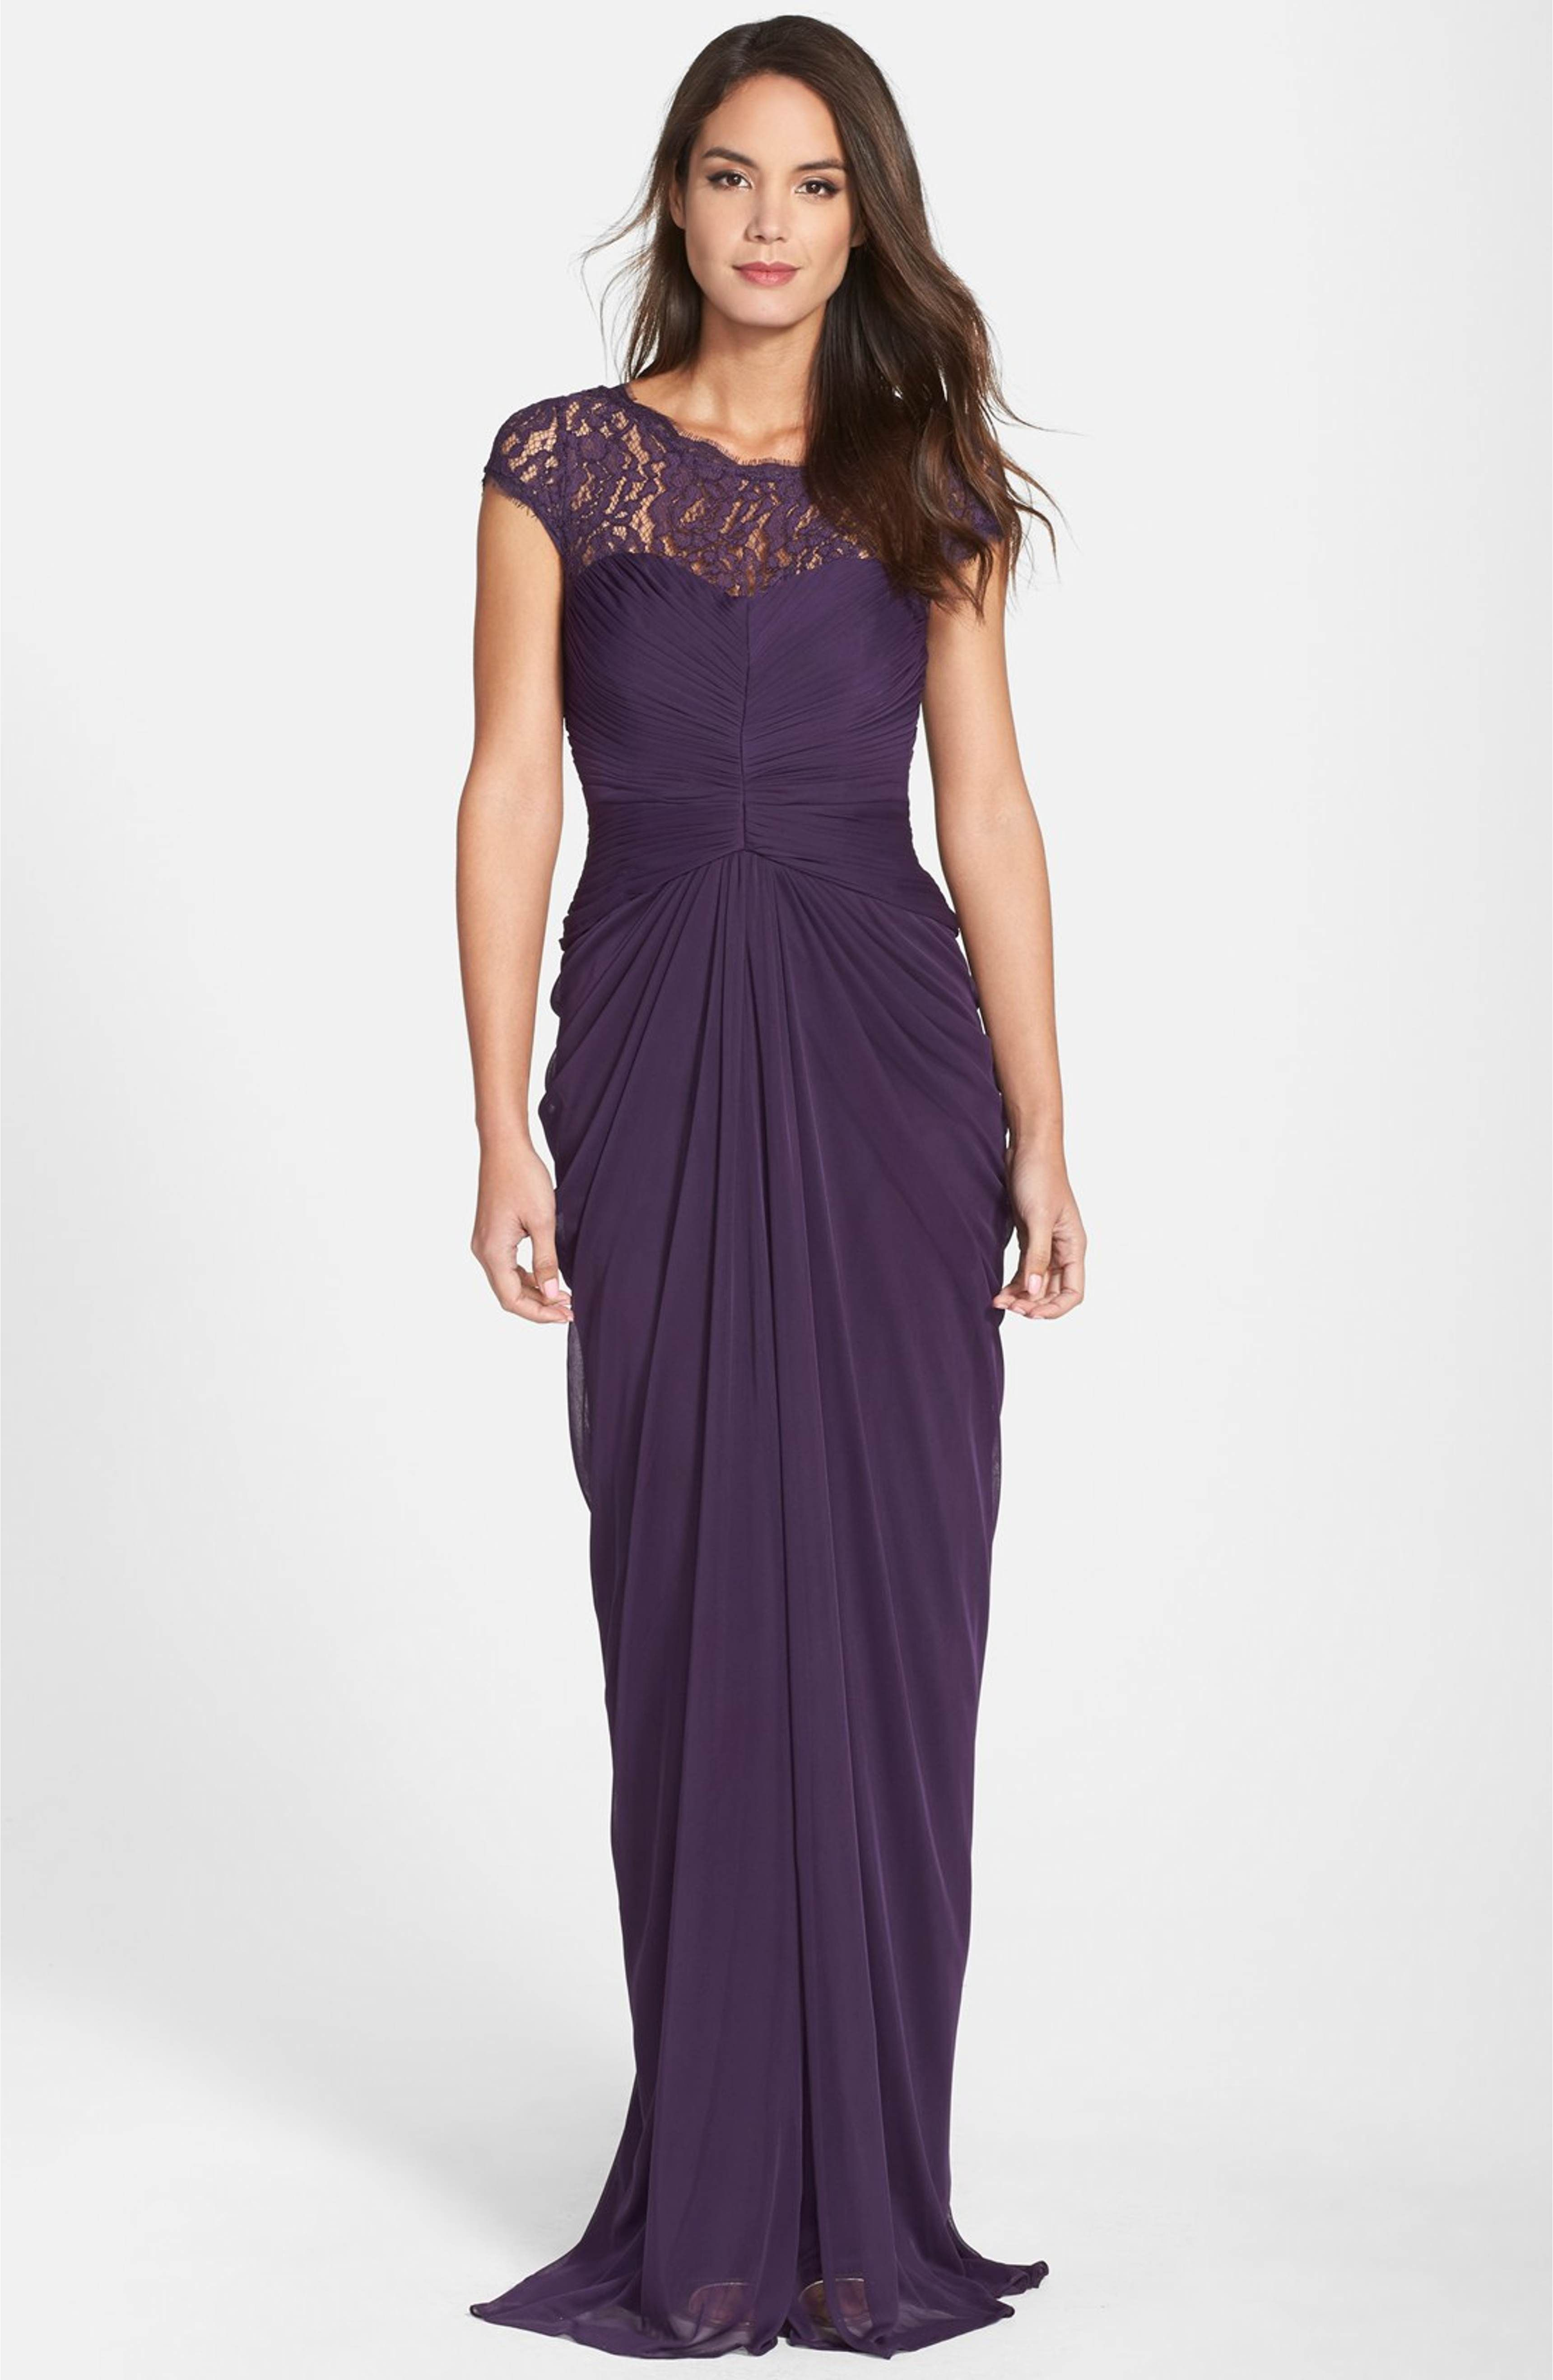 Main Image - Adrianna Papell Lace Yoke Drape Gown | Mother of the ...